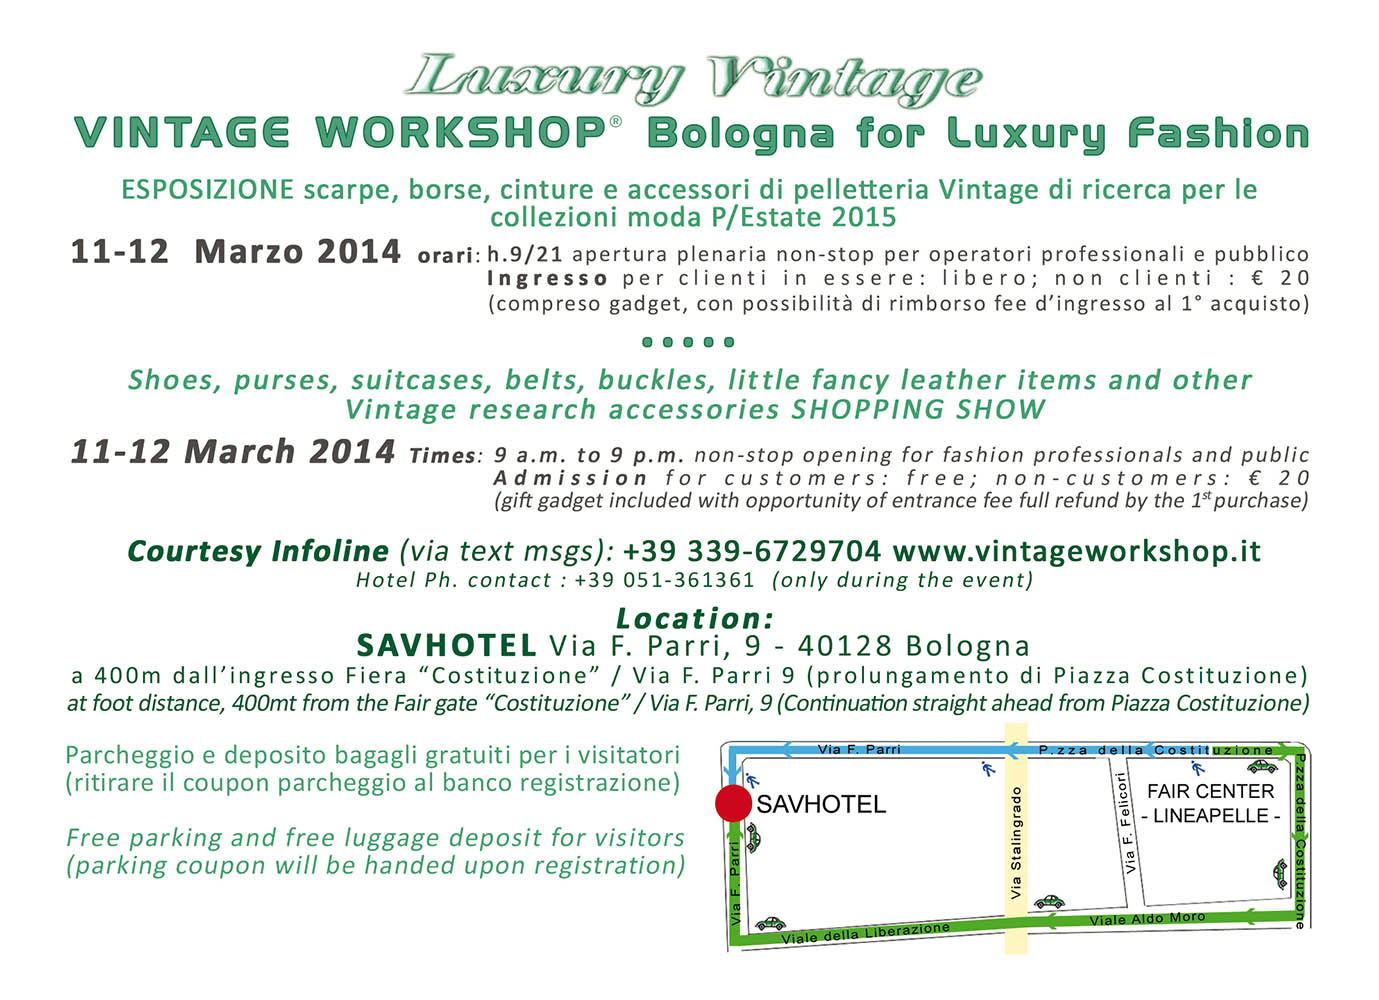 Vintage Workshop Bologna for Luxury Fashion 41 edizione